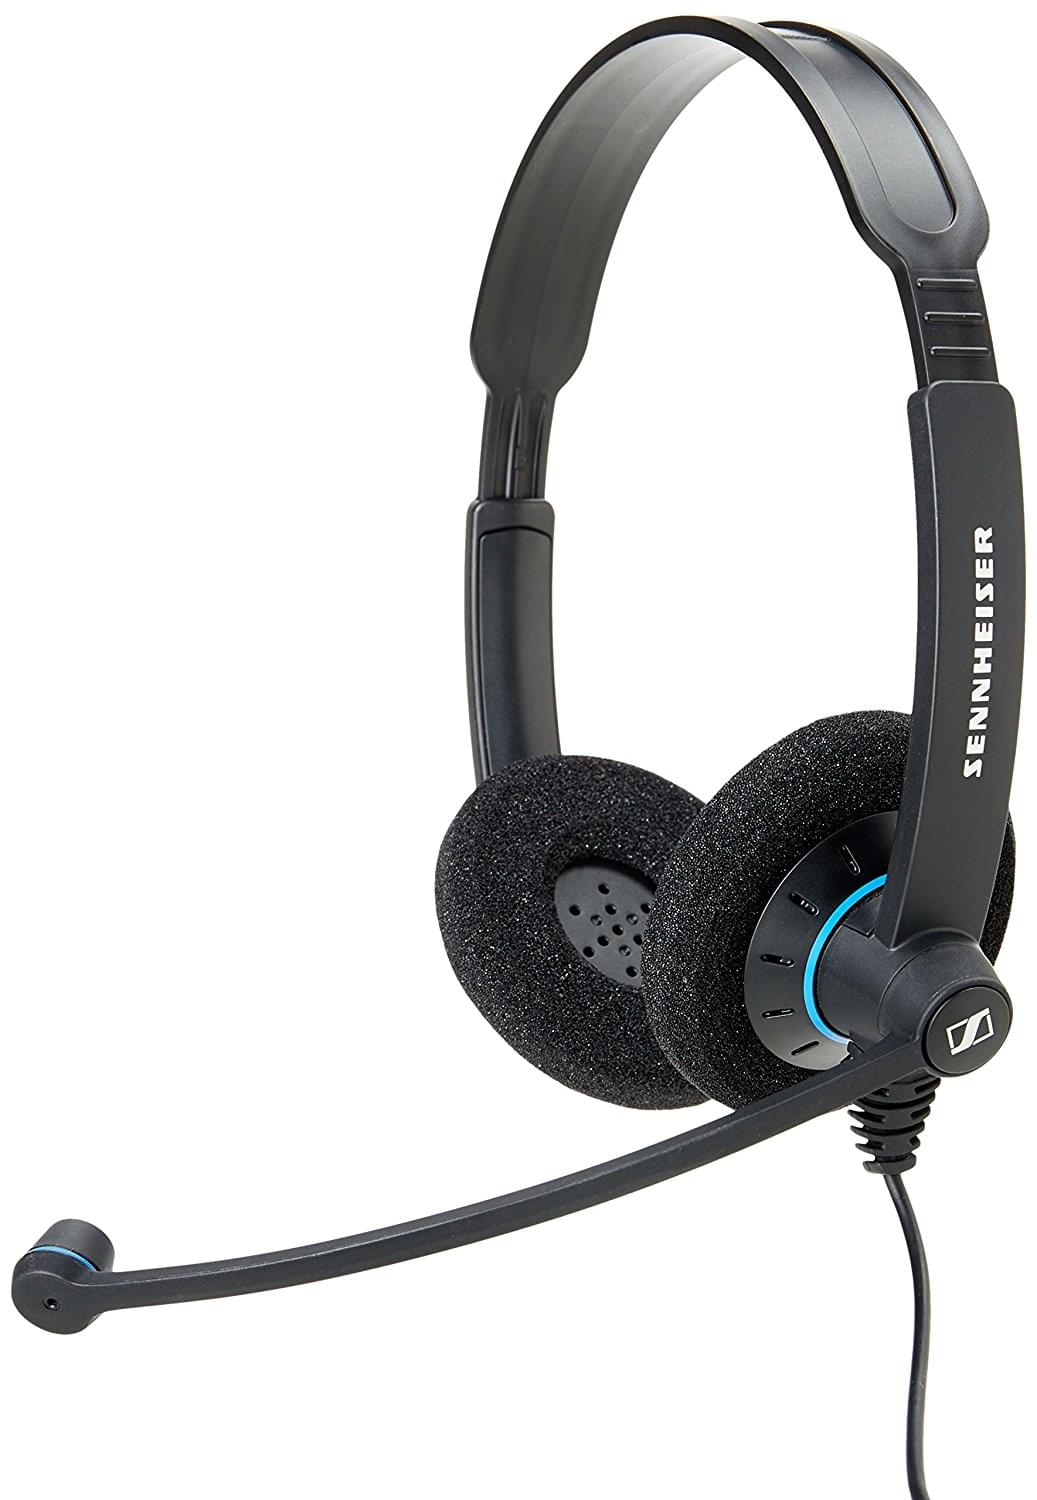 cea39e05459 The Top 10 Skype Compatible Business Headsets in 2018 | GetVoIP